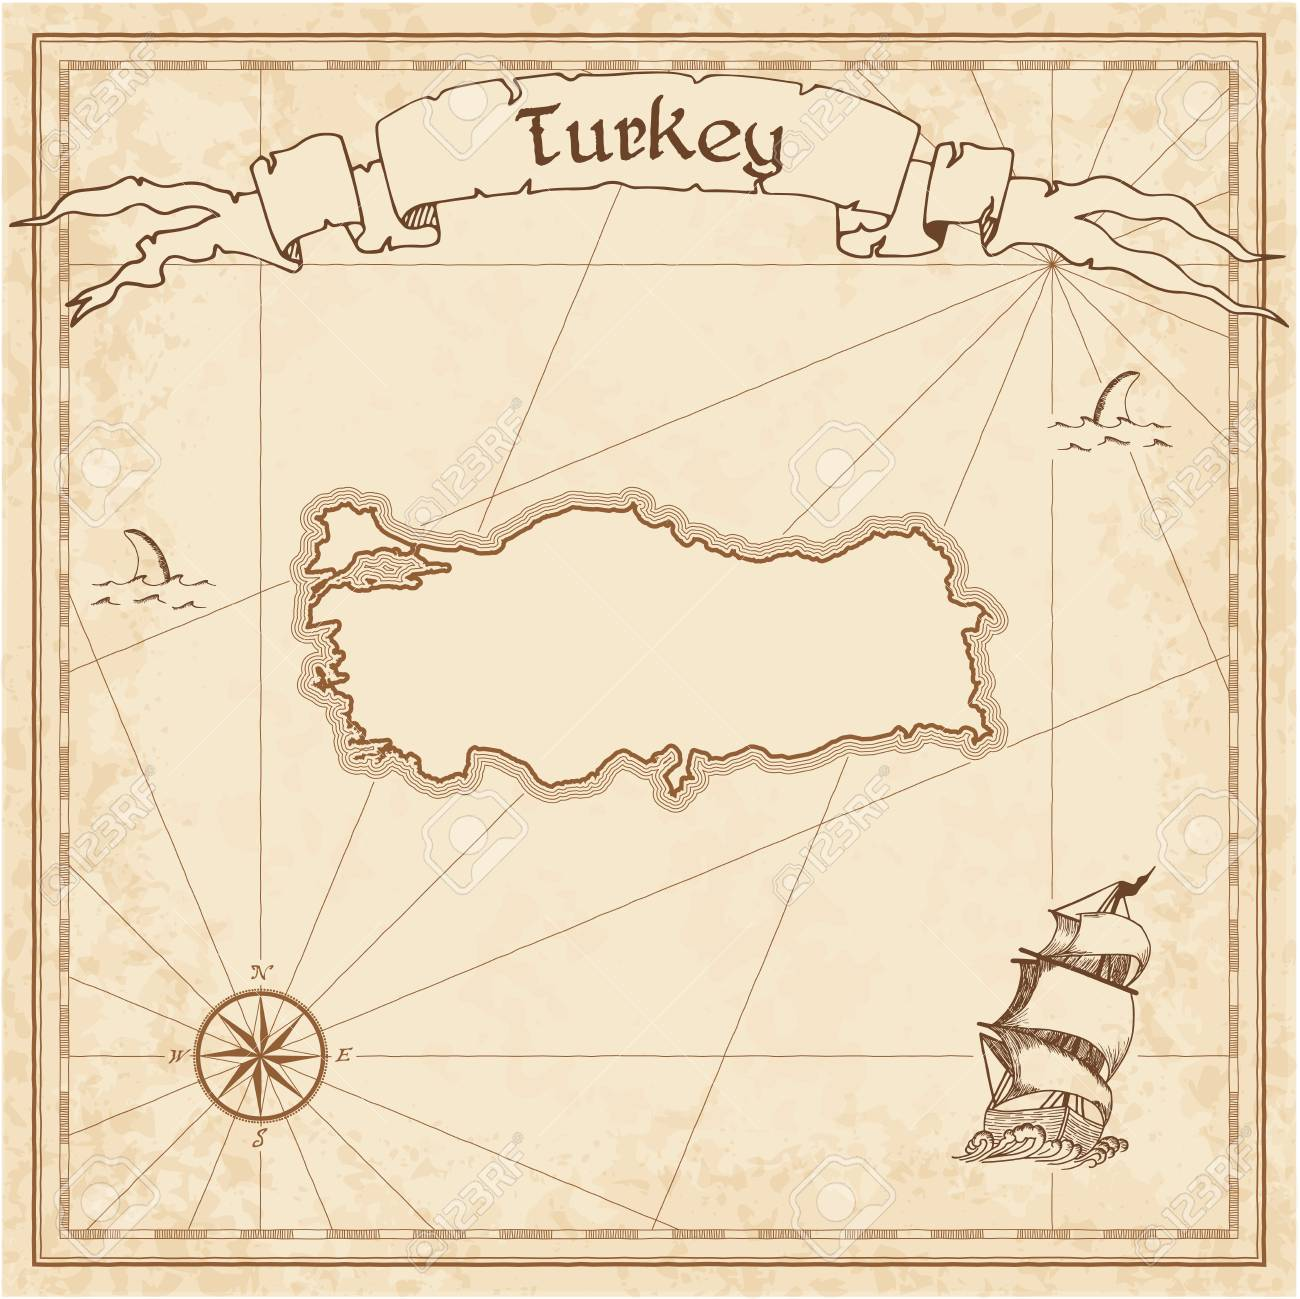 Turkey Old Treasure Map. Sepia Engraved Template Of Pirate Map ...